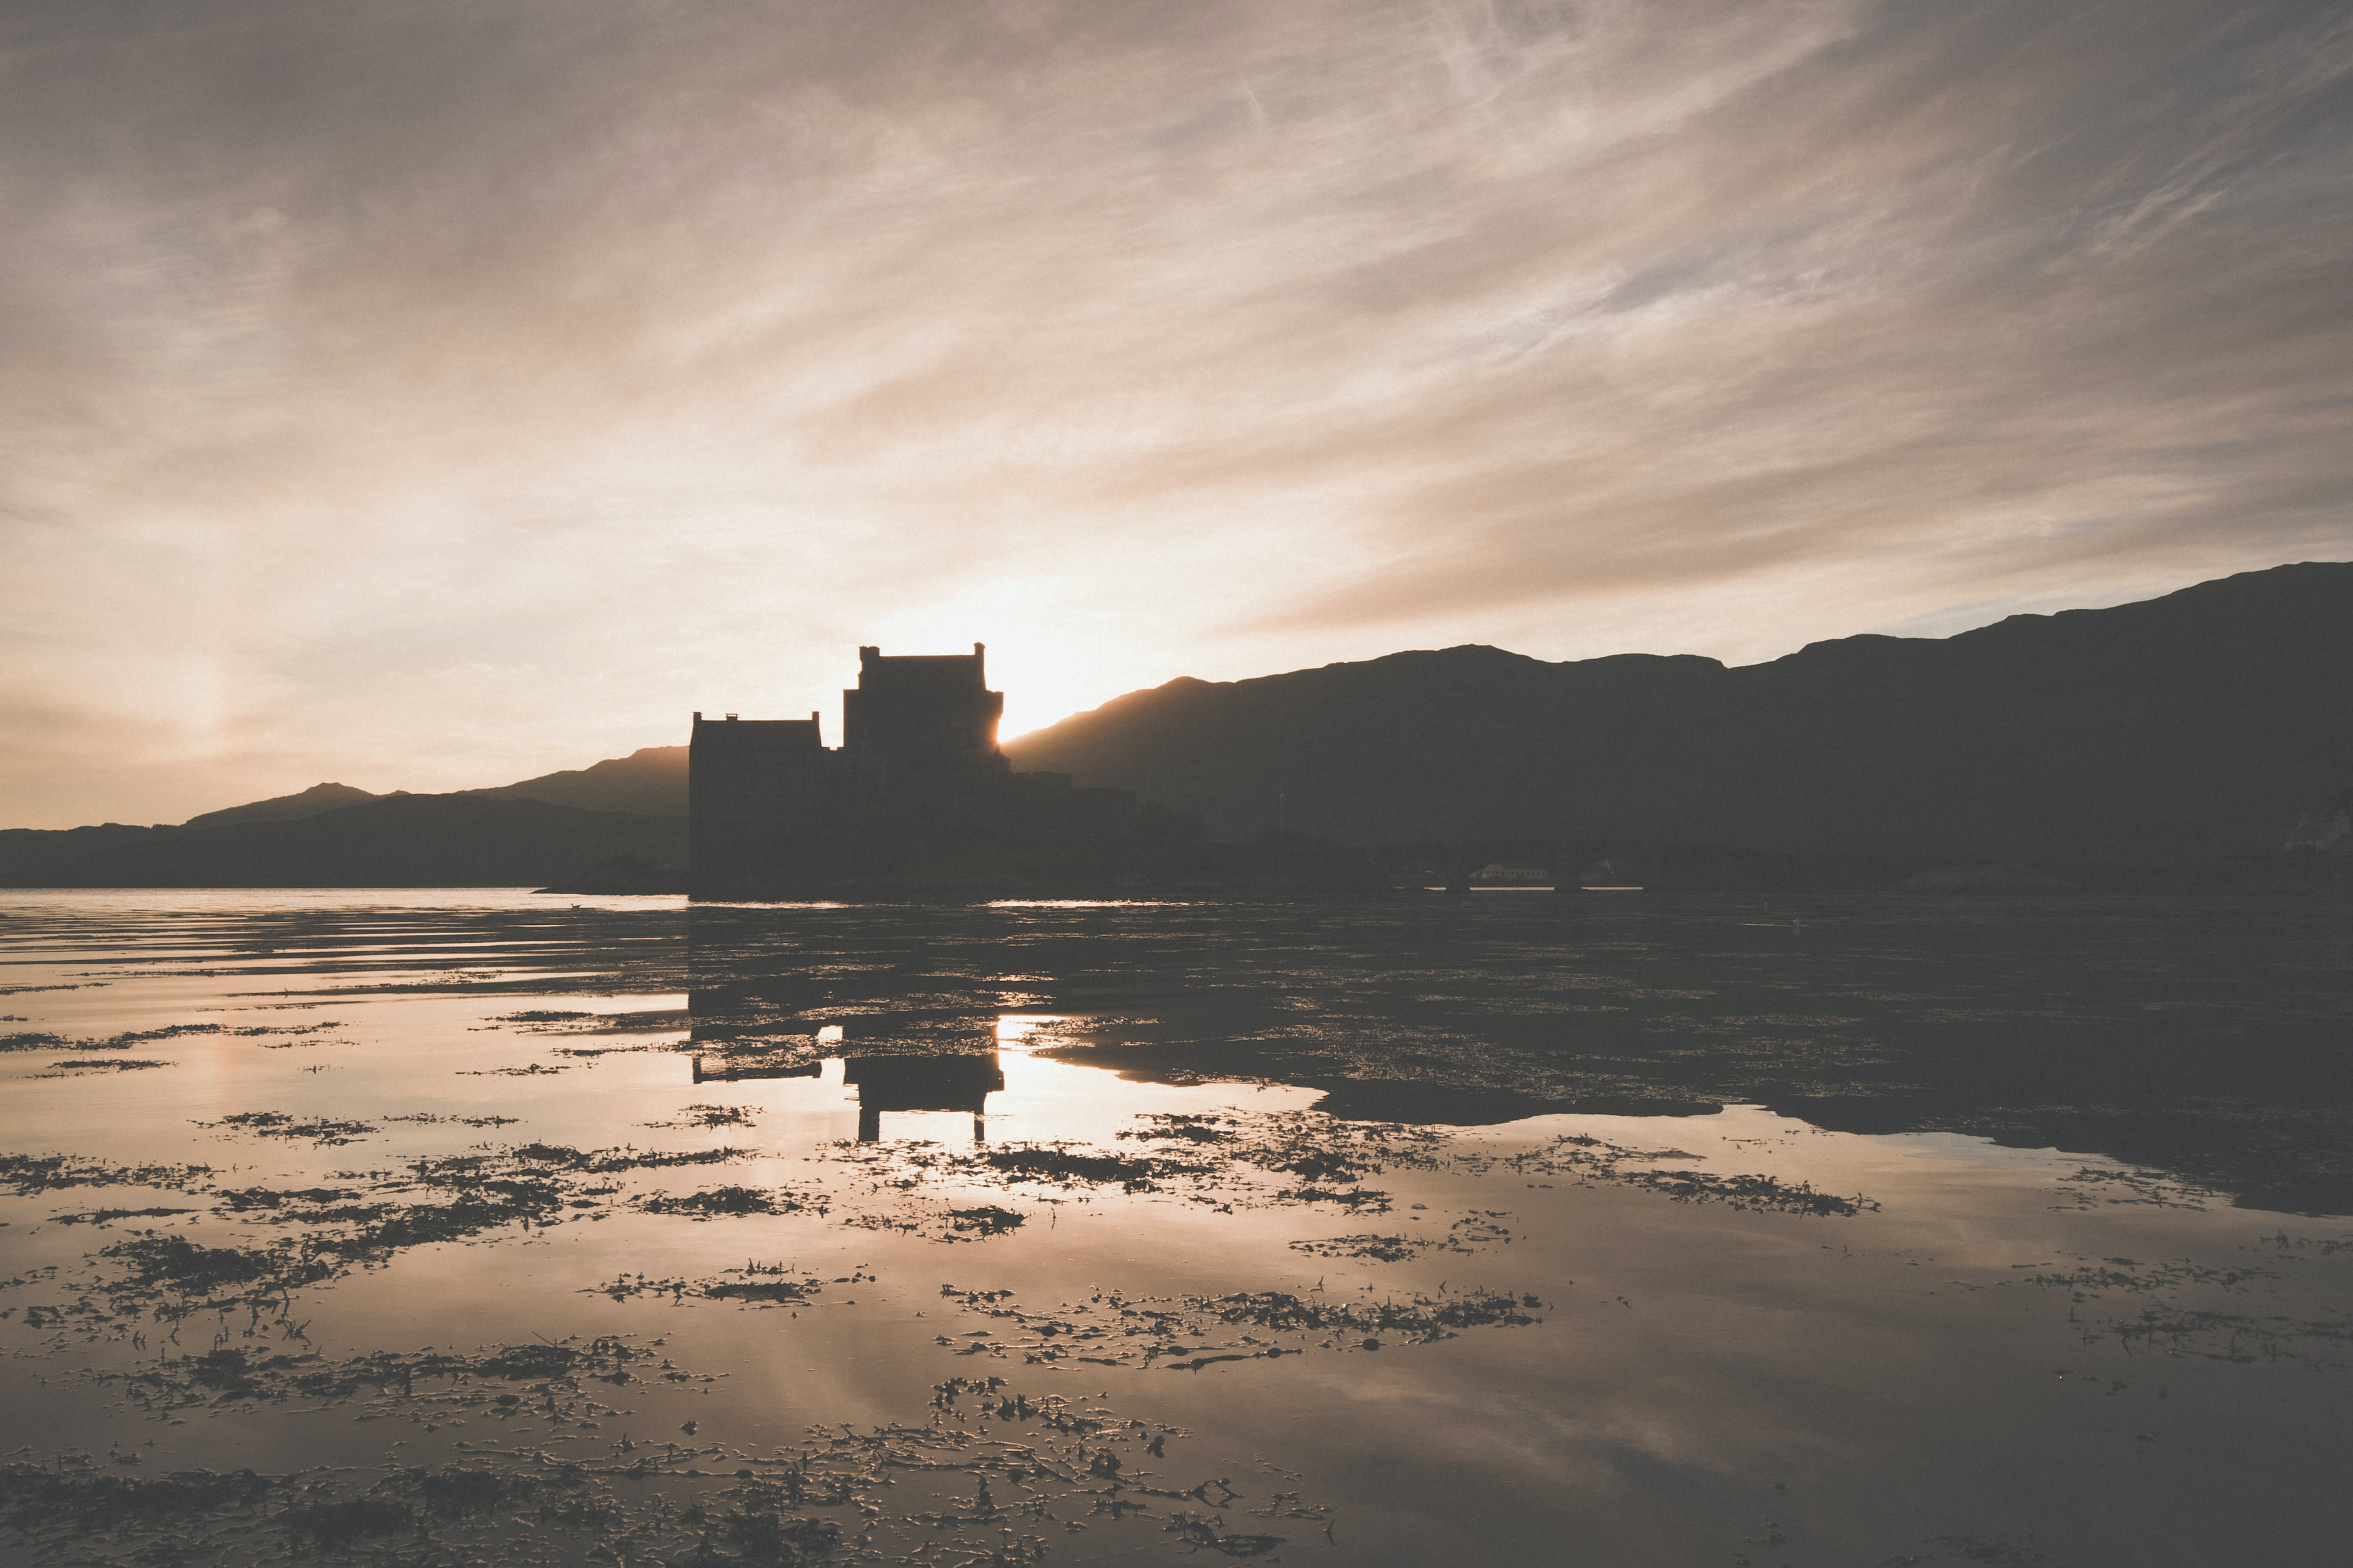 A silhouette of a castle at the shore of a lake at sunset